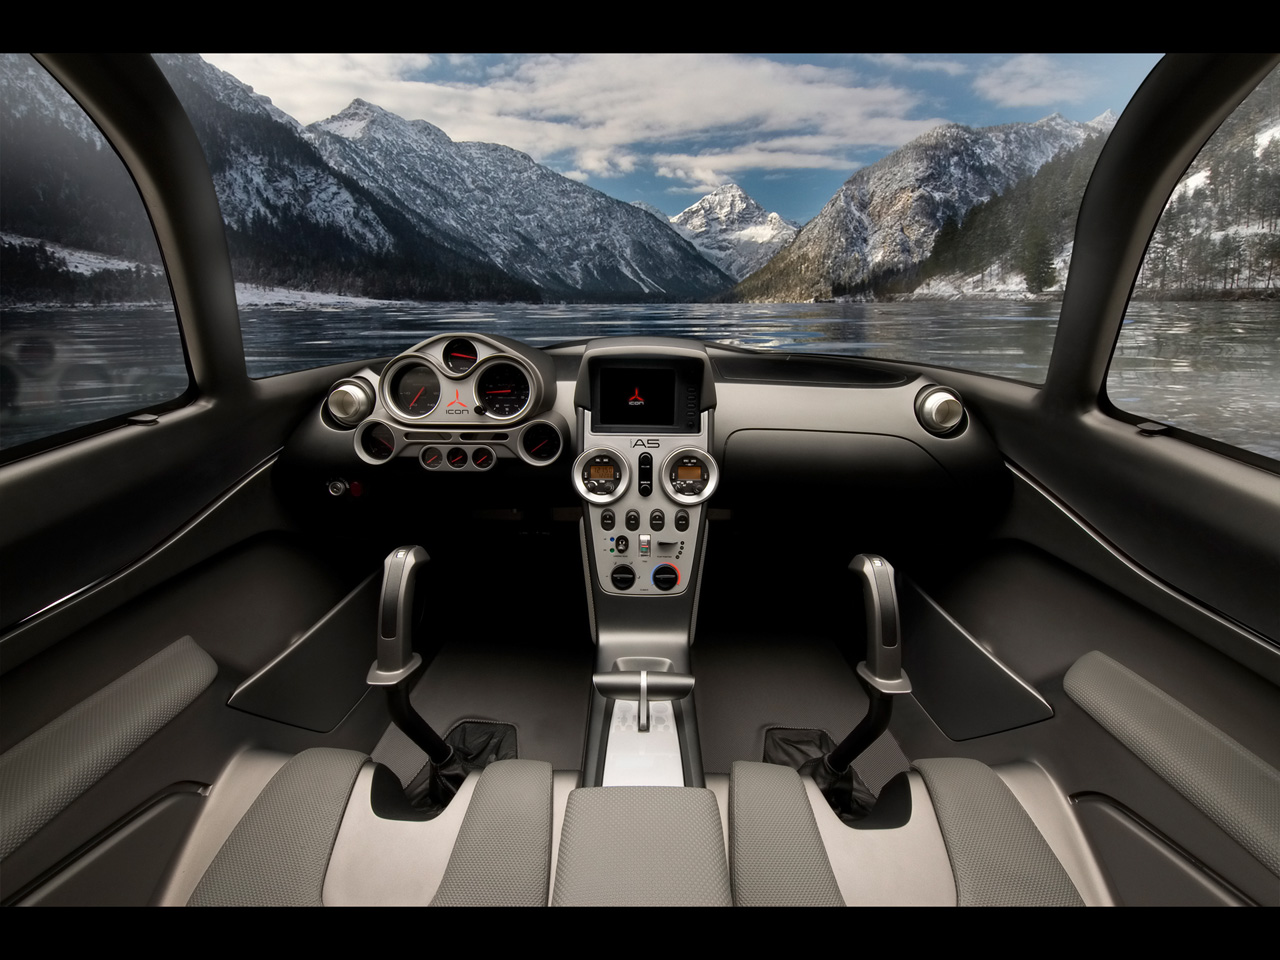 inventions of tomorrow the icon a5